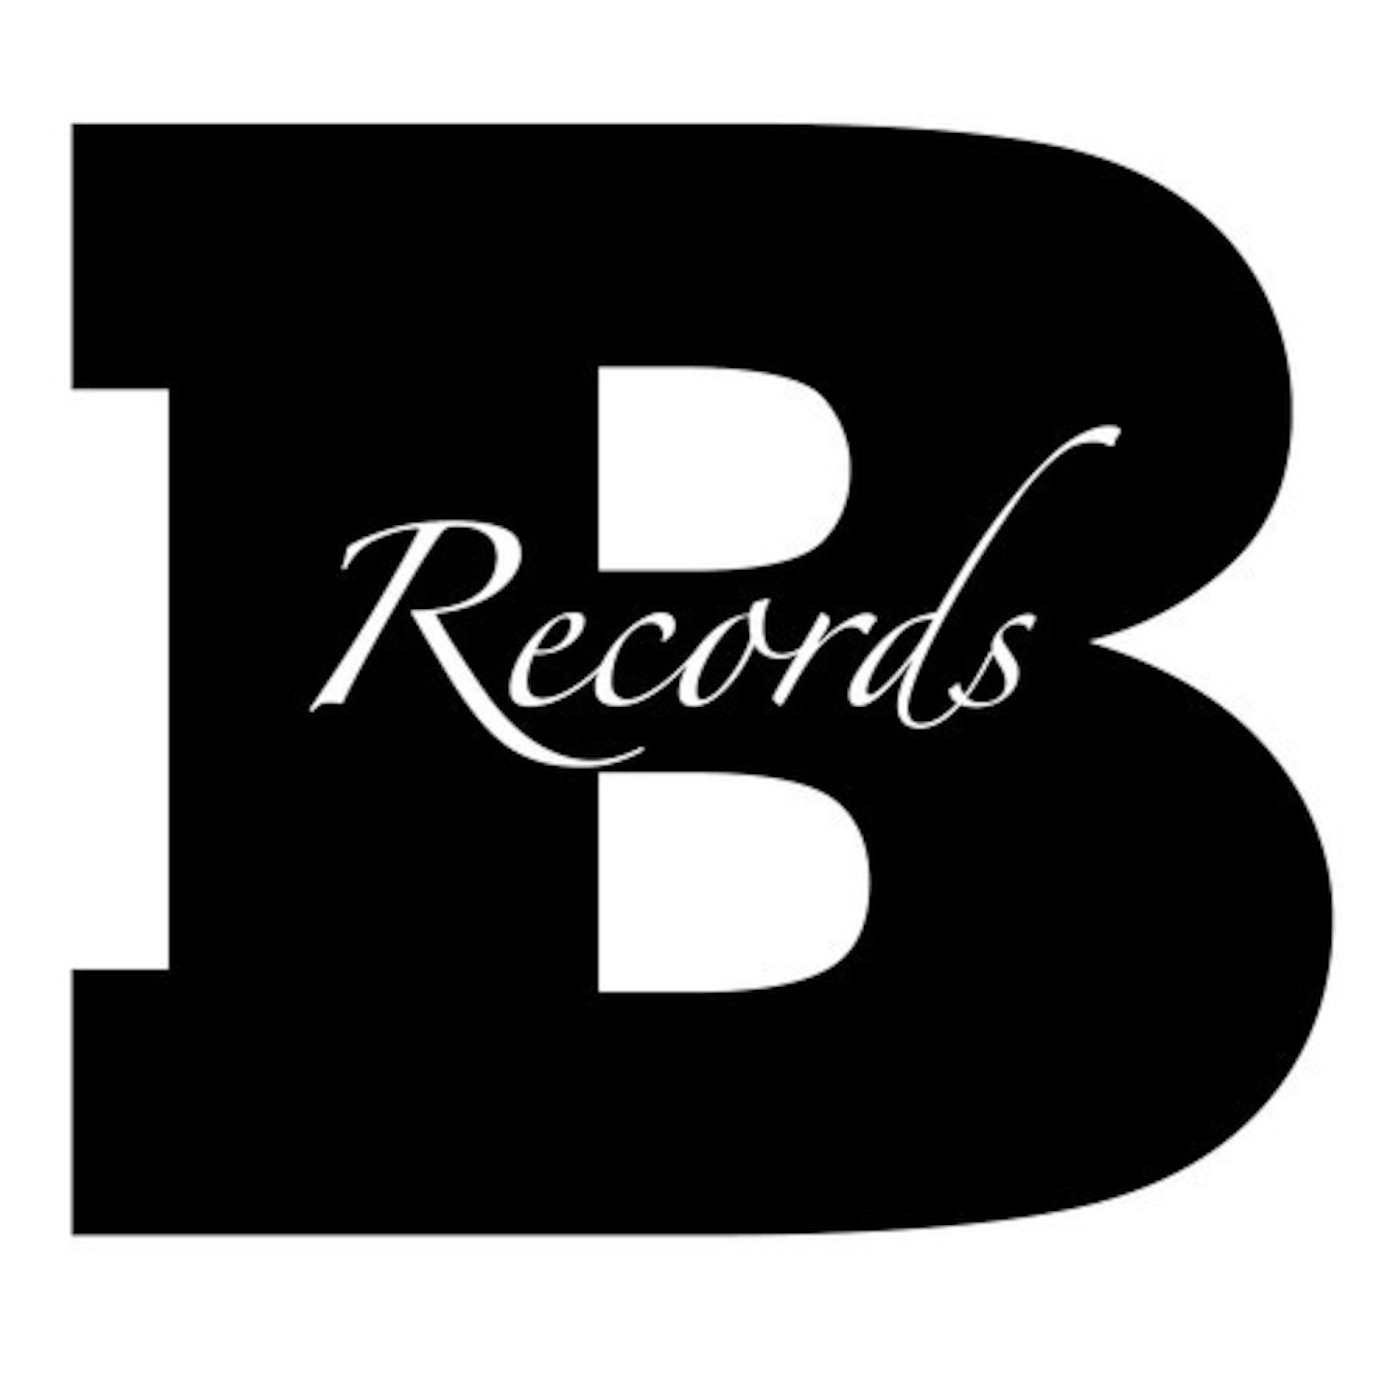 Bedroom Records Podcast